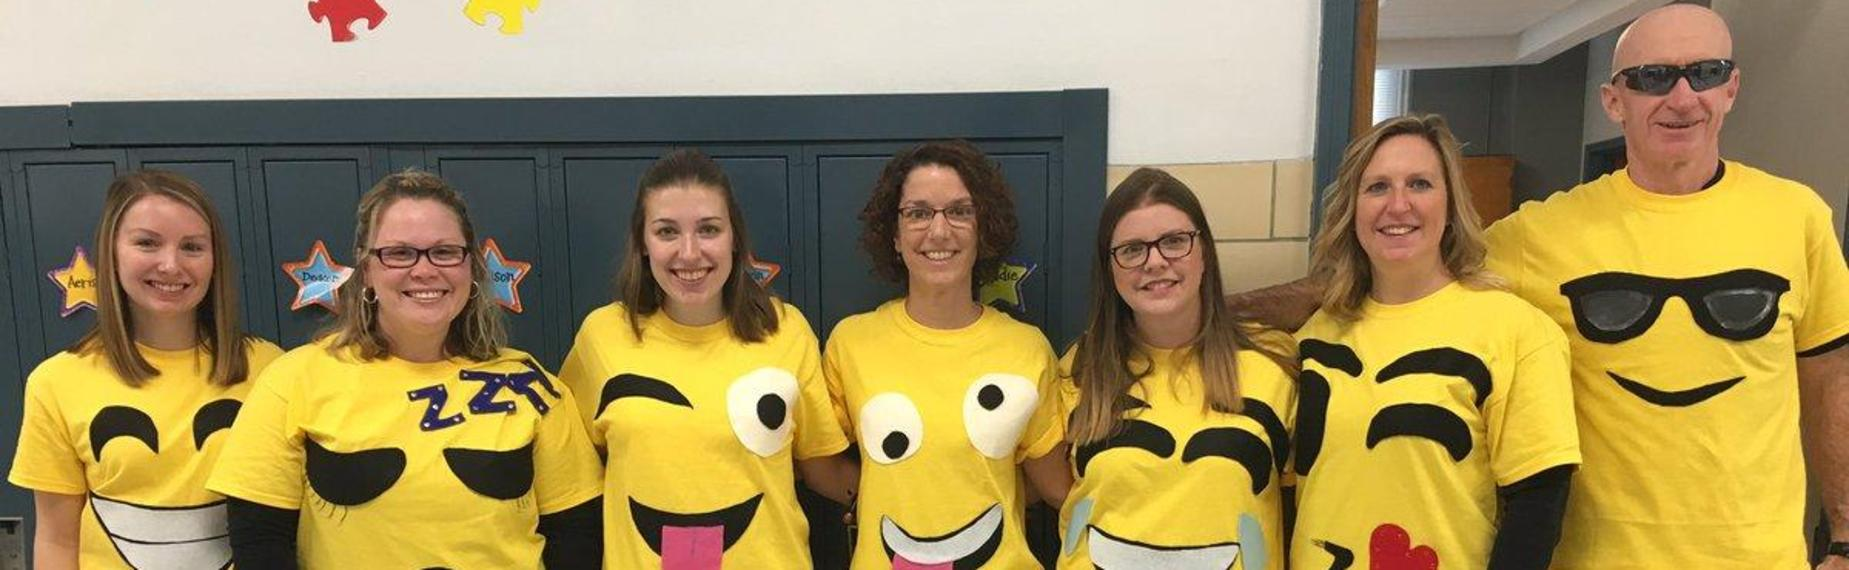 Teachers dress up as emojis for Halloween